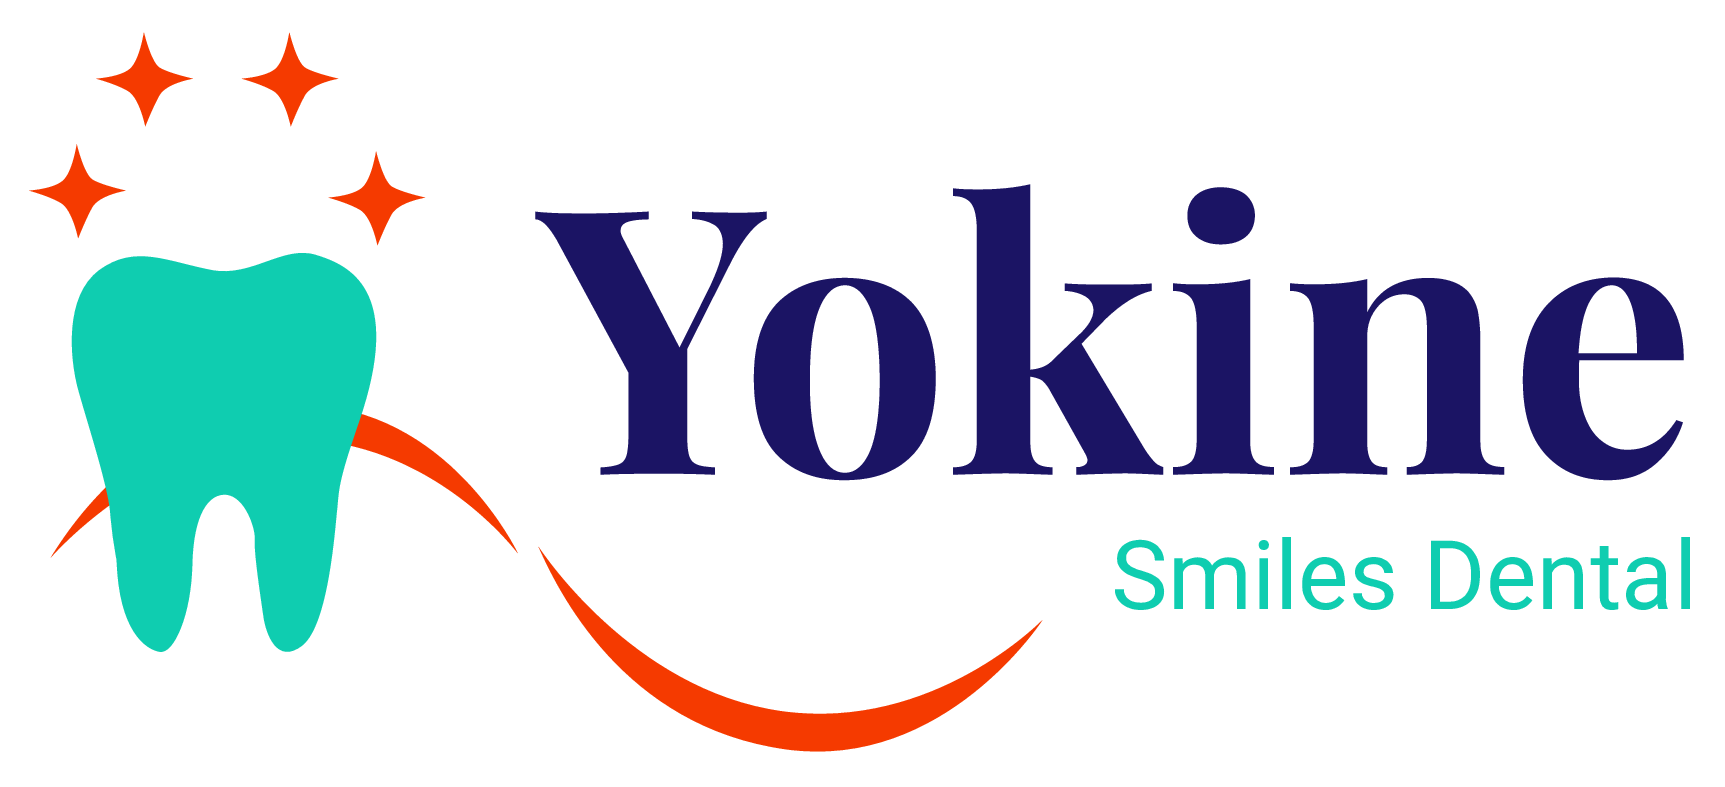 Yokine Smiles Dental Logo